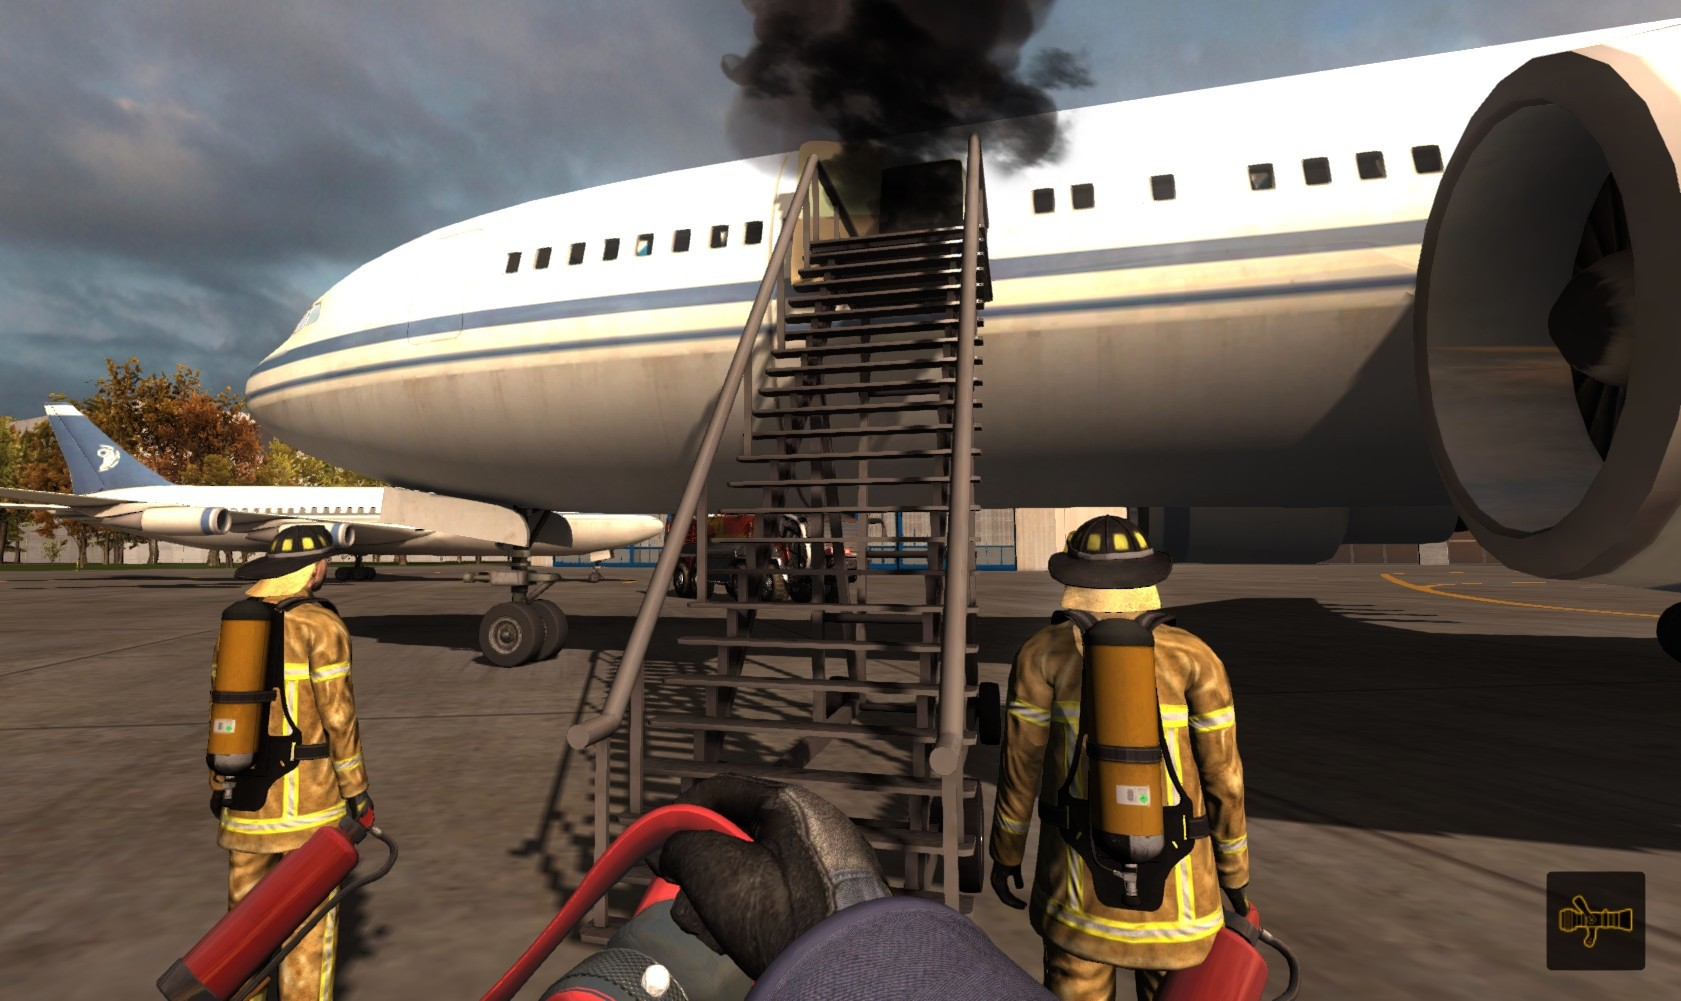 Official Airport Firefighters: The Simulation